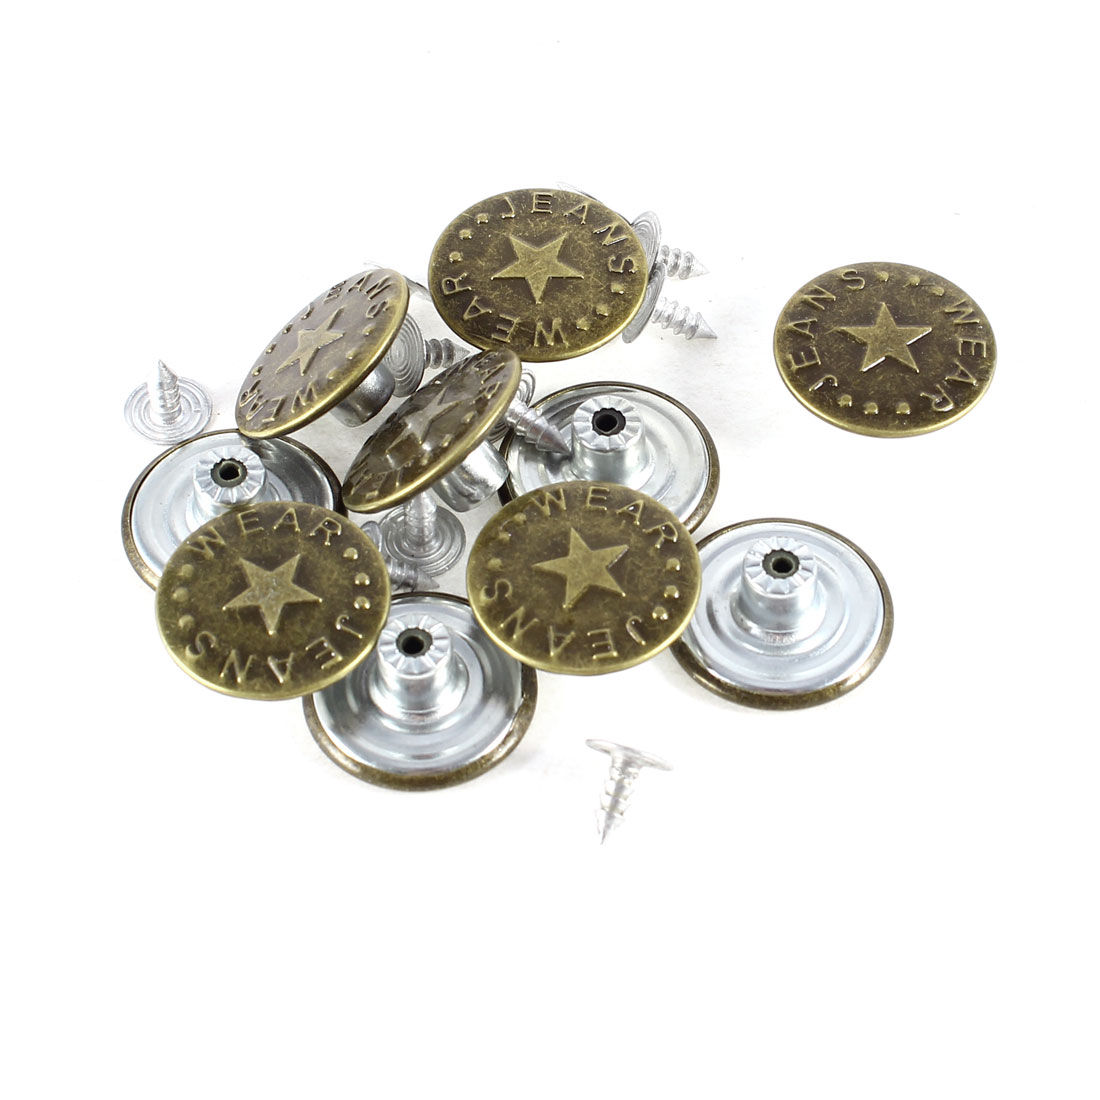 Unique Bargains 10pcs Star Prints Bronze Tone Tack Button Rivet for Jean Denim Jacket